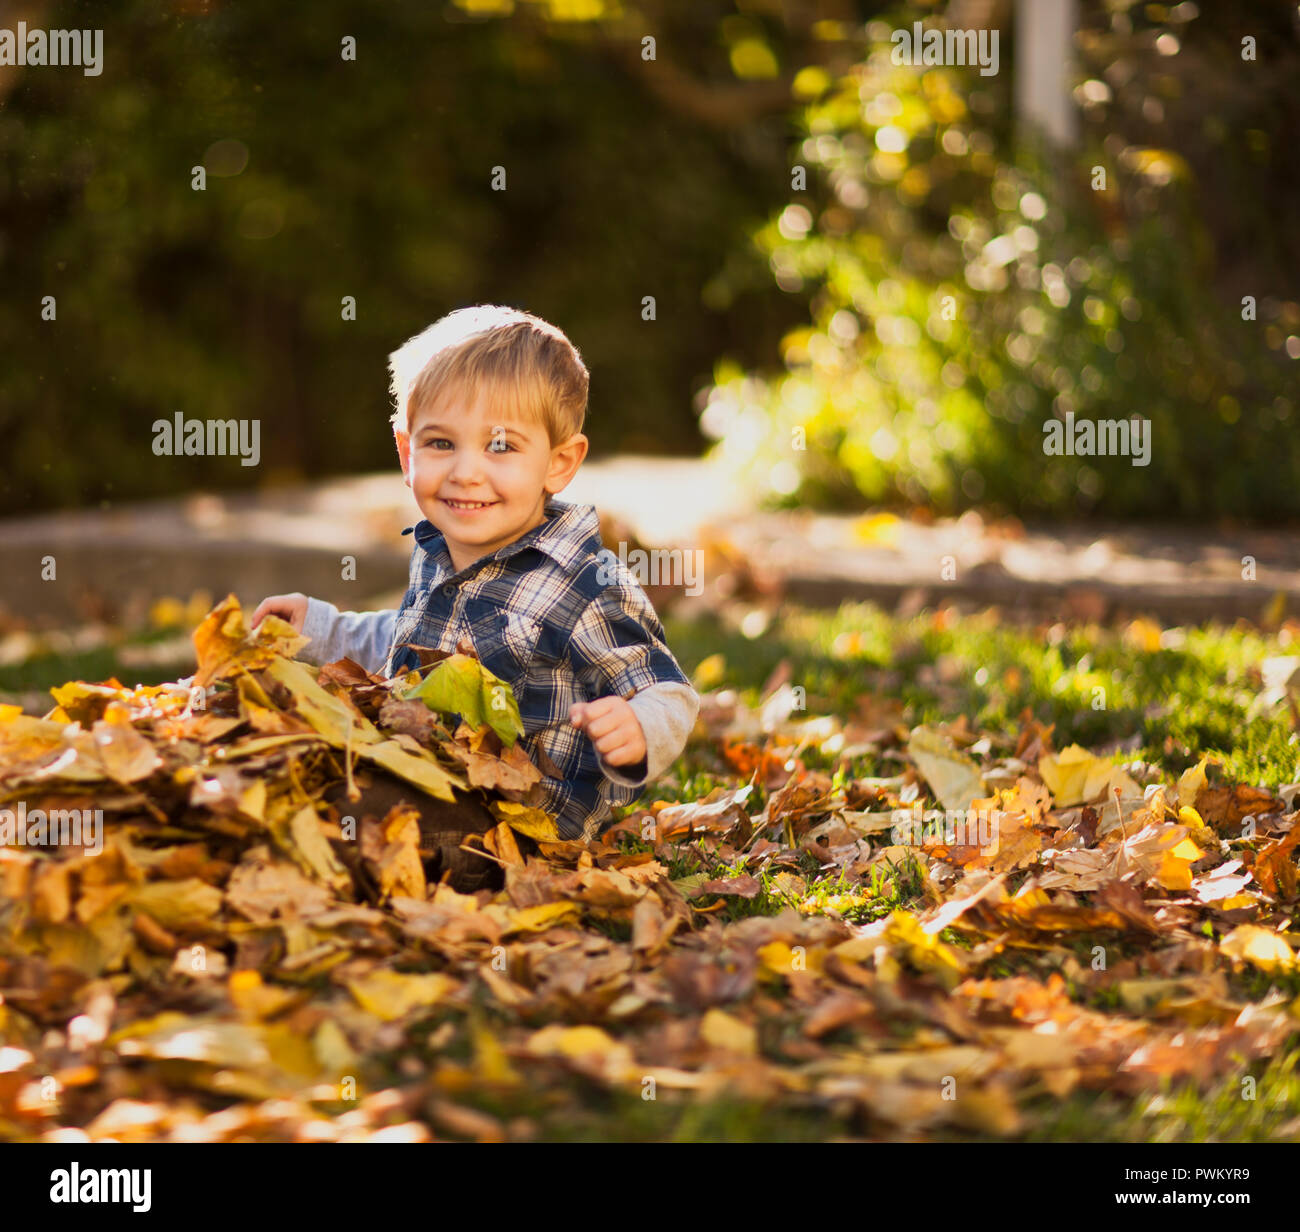 Little boy having fun sitting in a pile of leaves in the backyard. Stock Photo